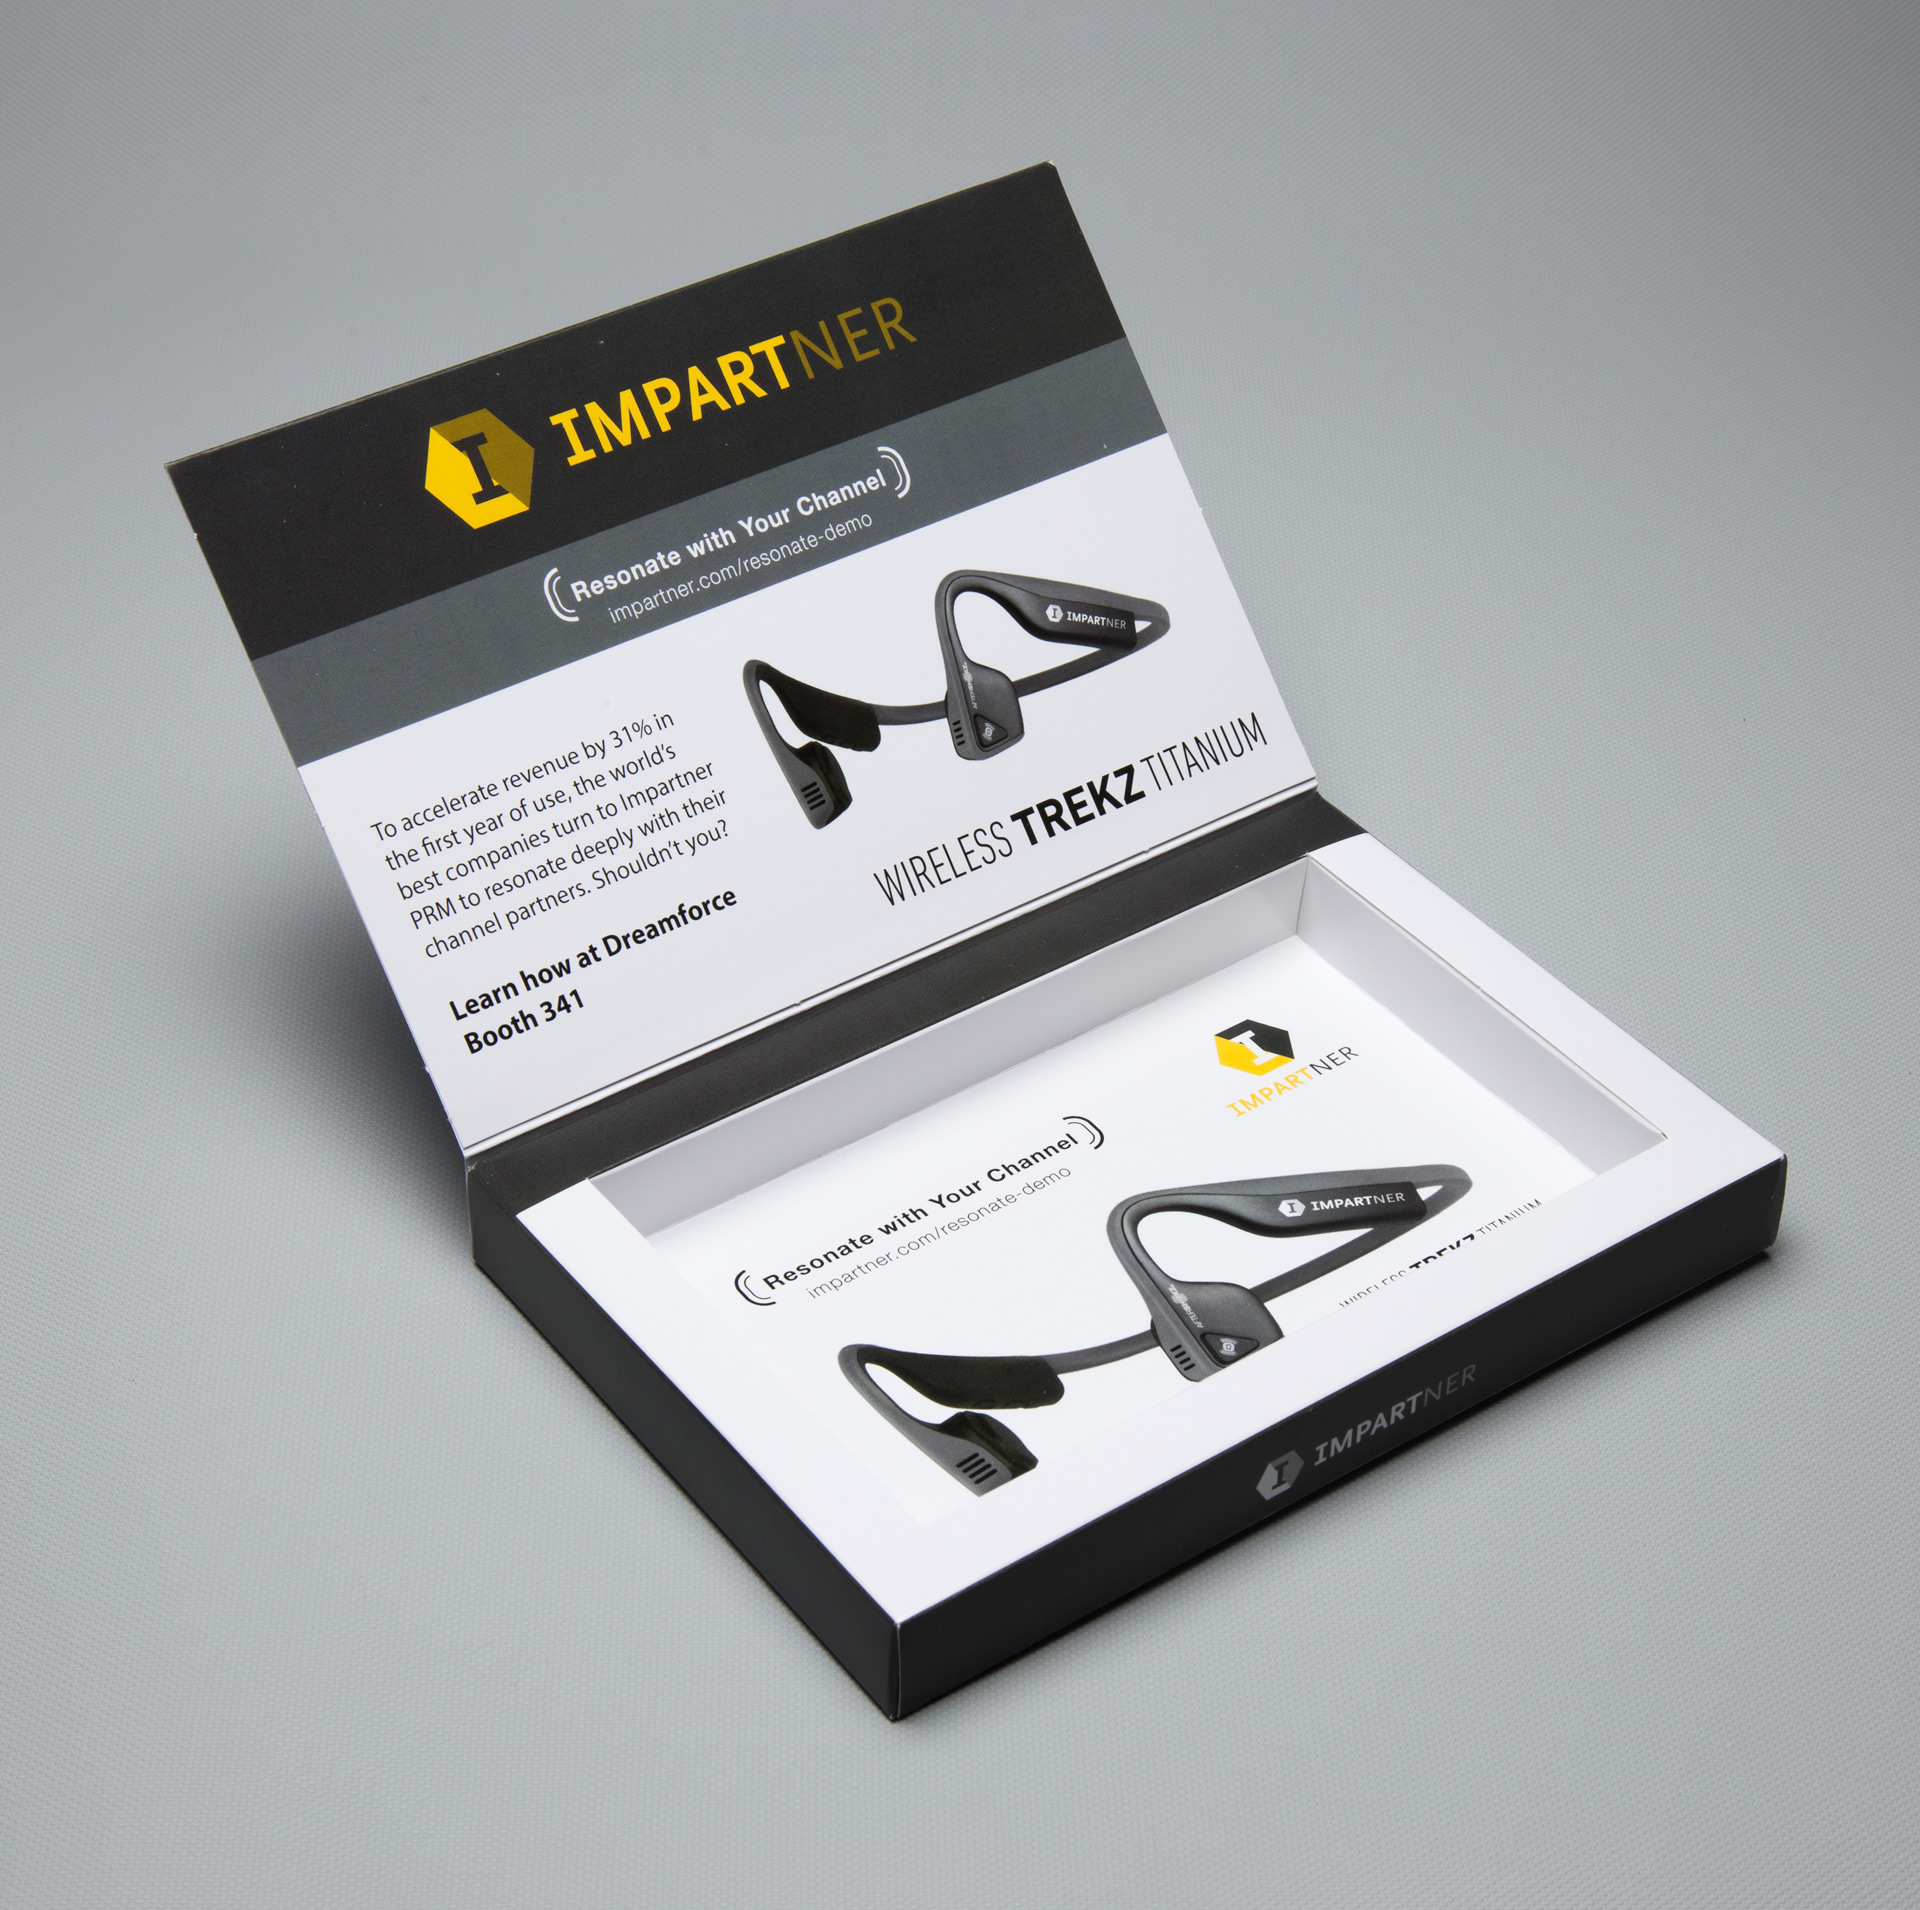 Impartner Drives Responses with the Large Well Box